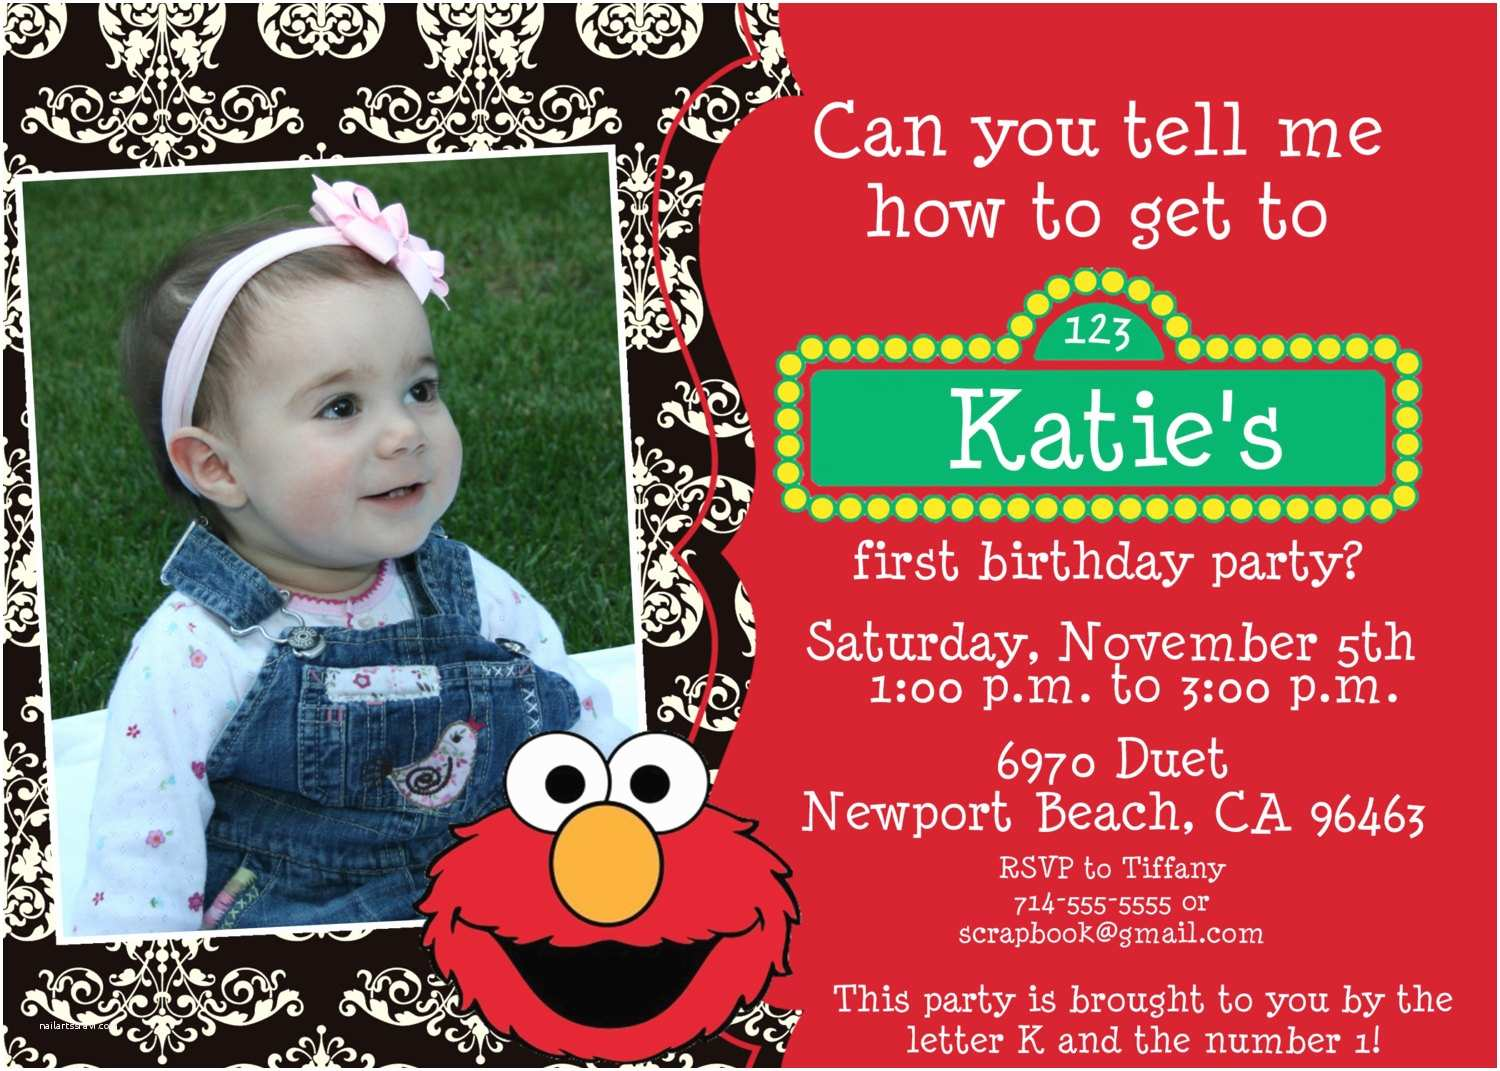 2nd Birthday Invitation Wording 2nd Birthday Party Invitation Wording